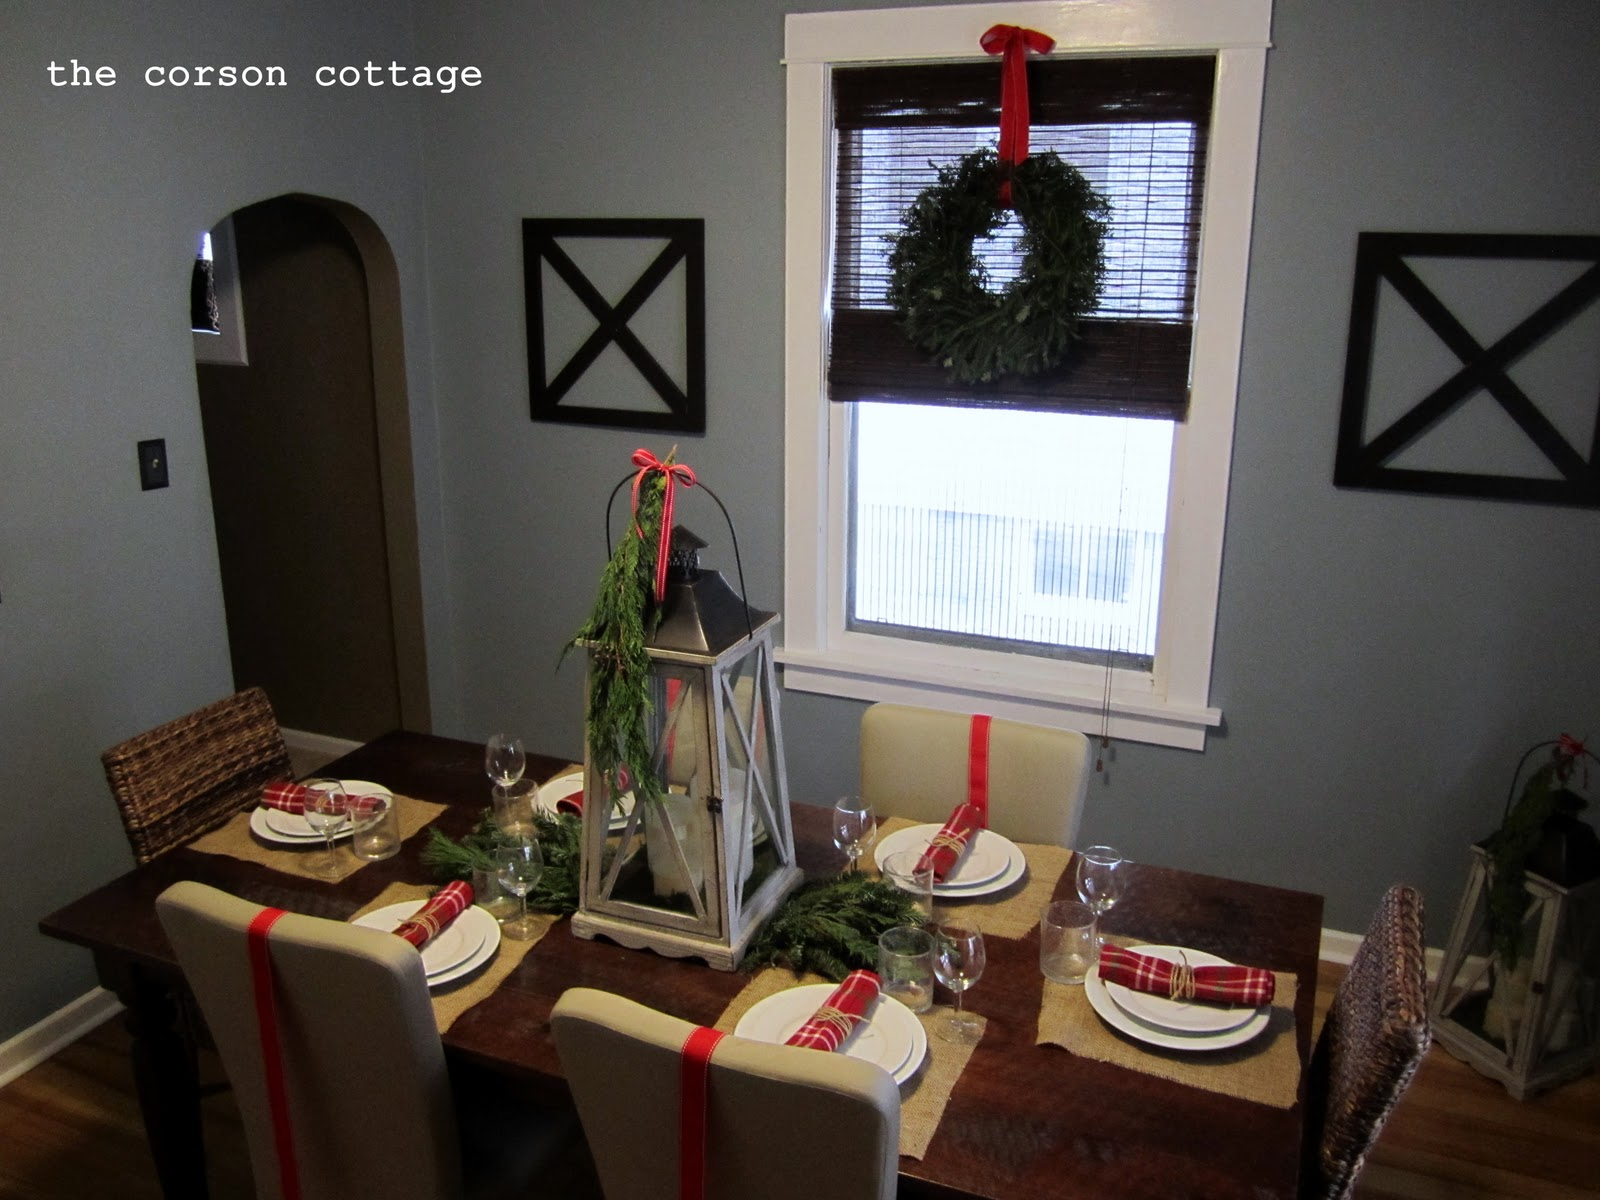 Holiday Dining Table Decor Part 2